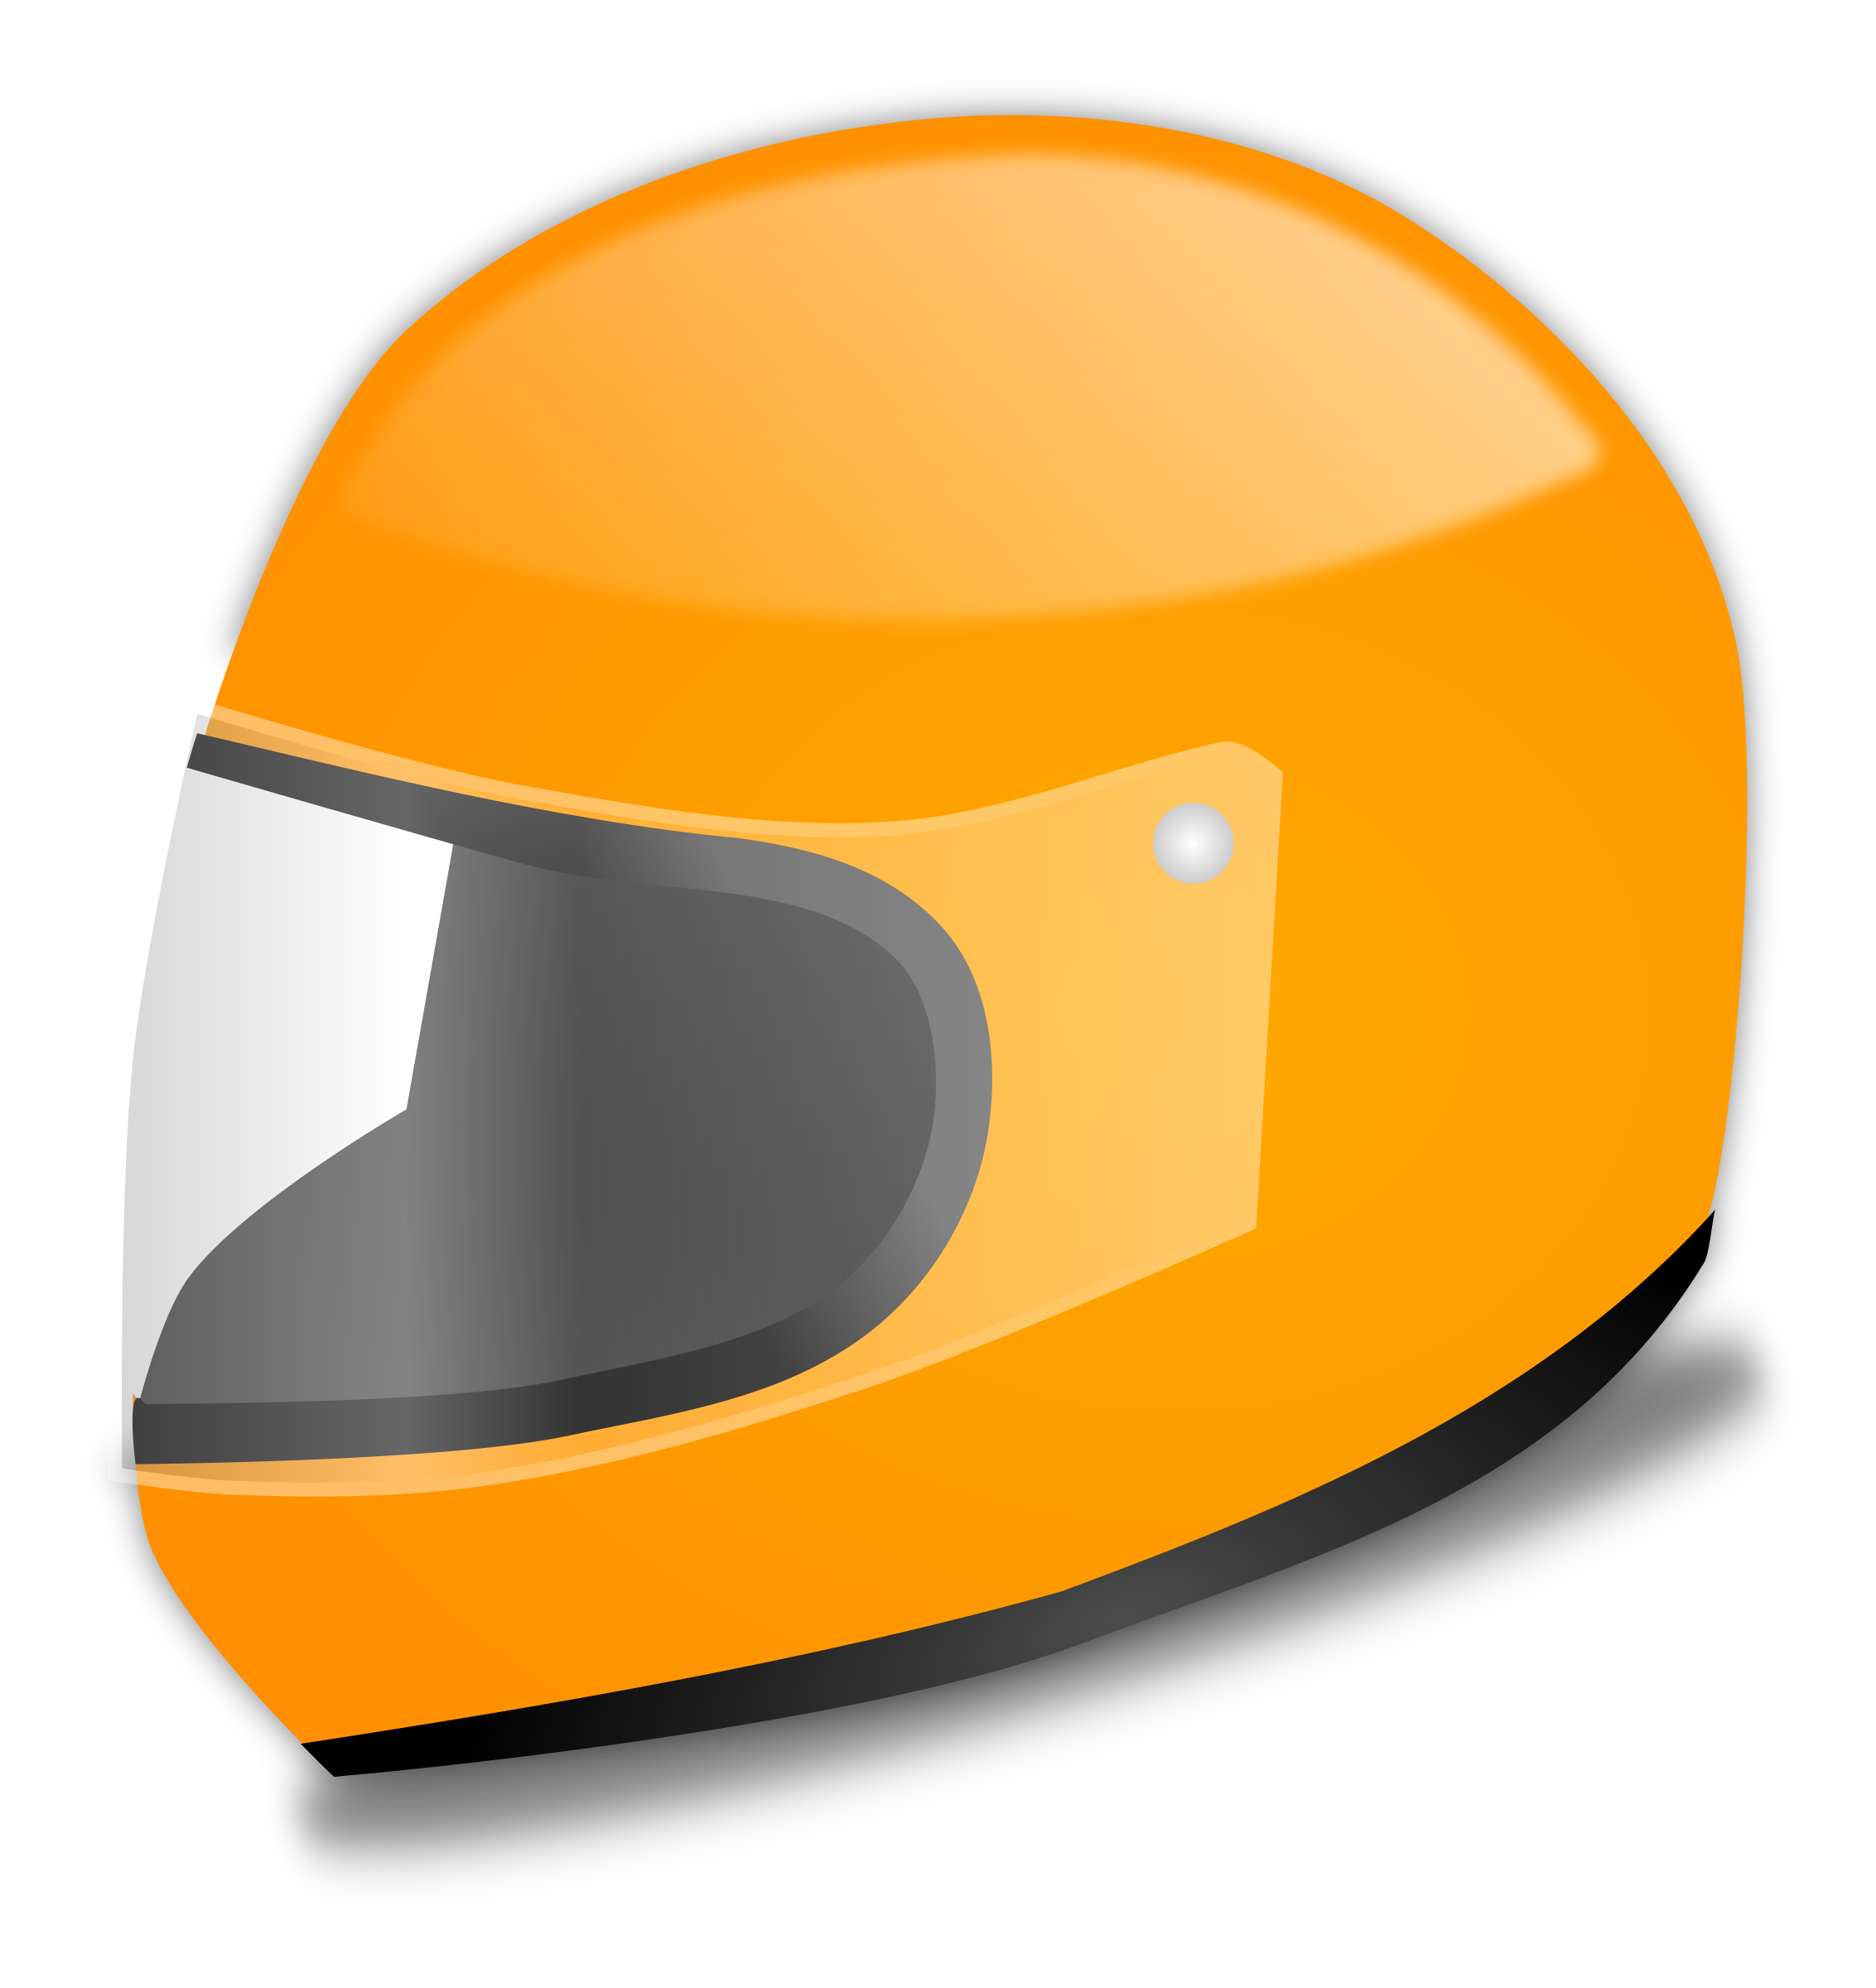 Racing Helmet by gnokii